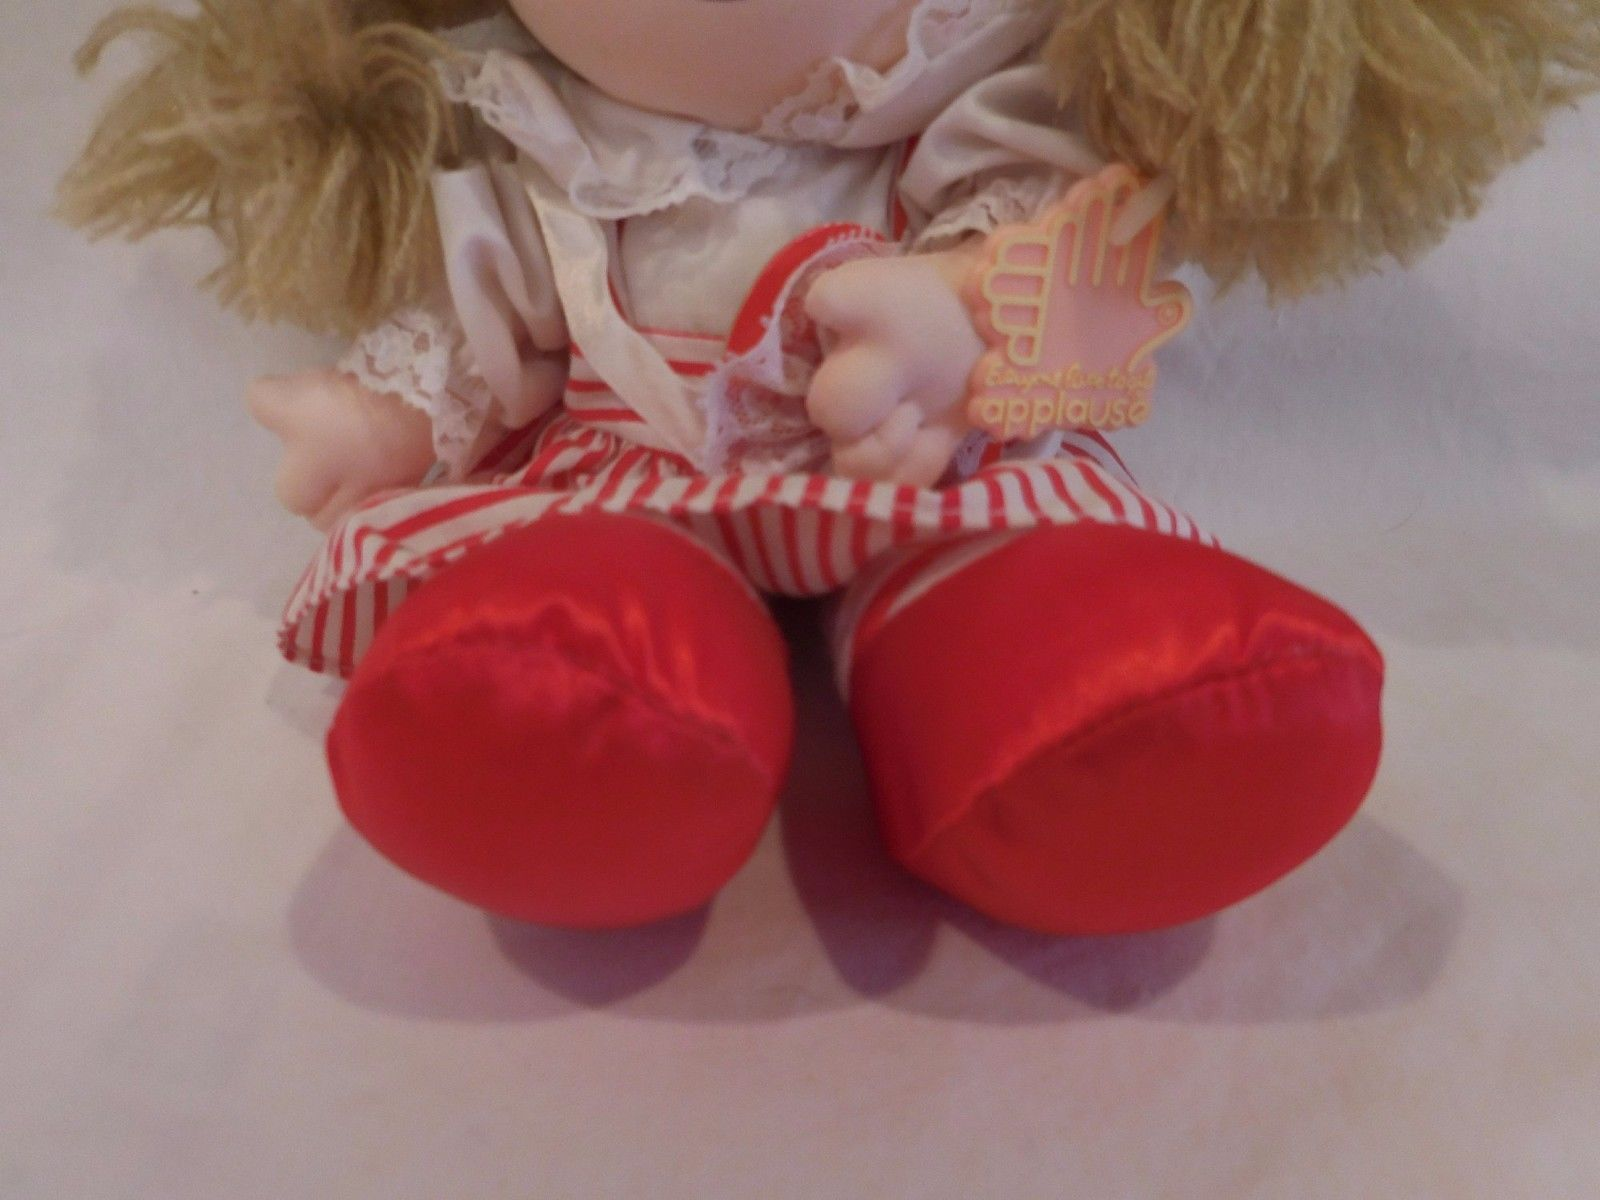 Precious Moments Melody Doll 1991 Valentines Day Limited Edition by Applause NWT